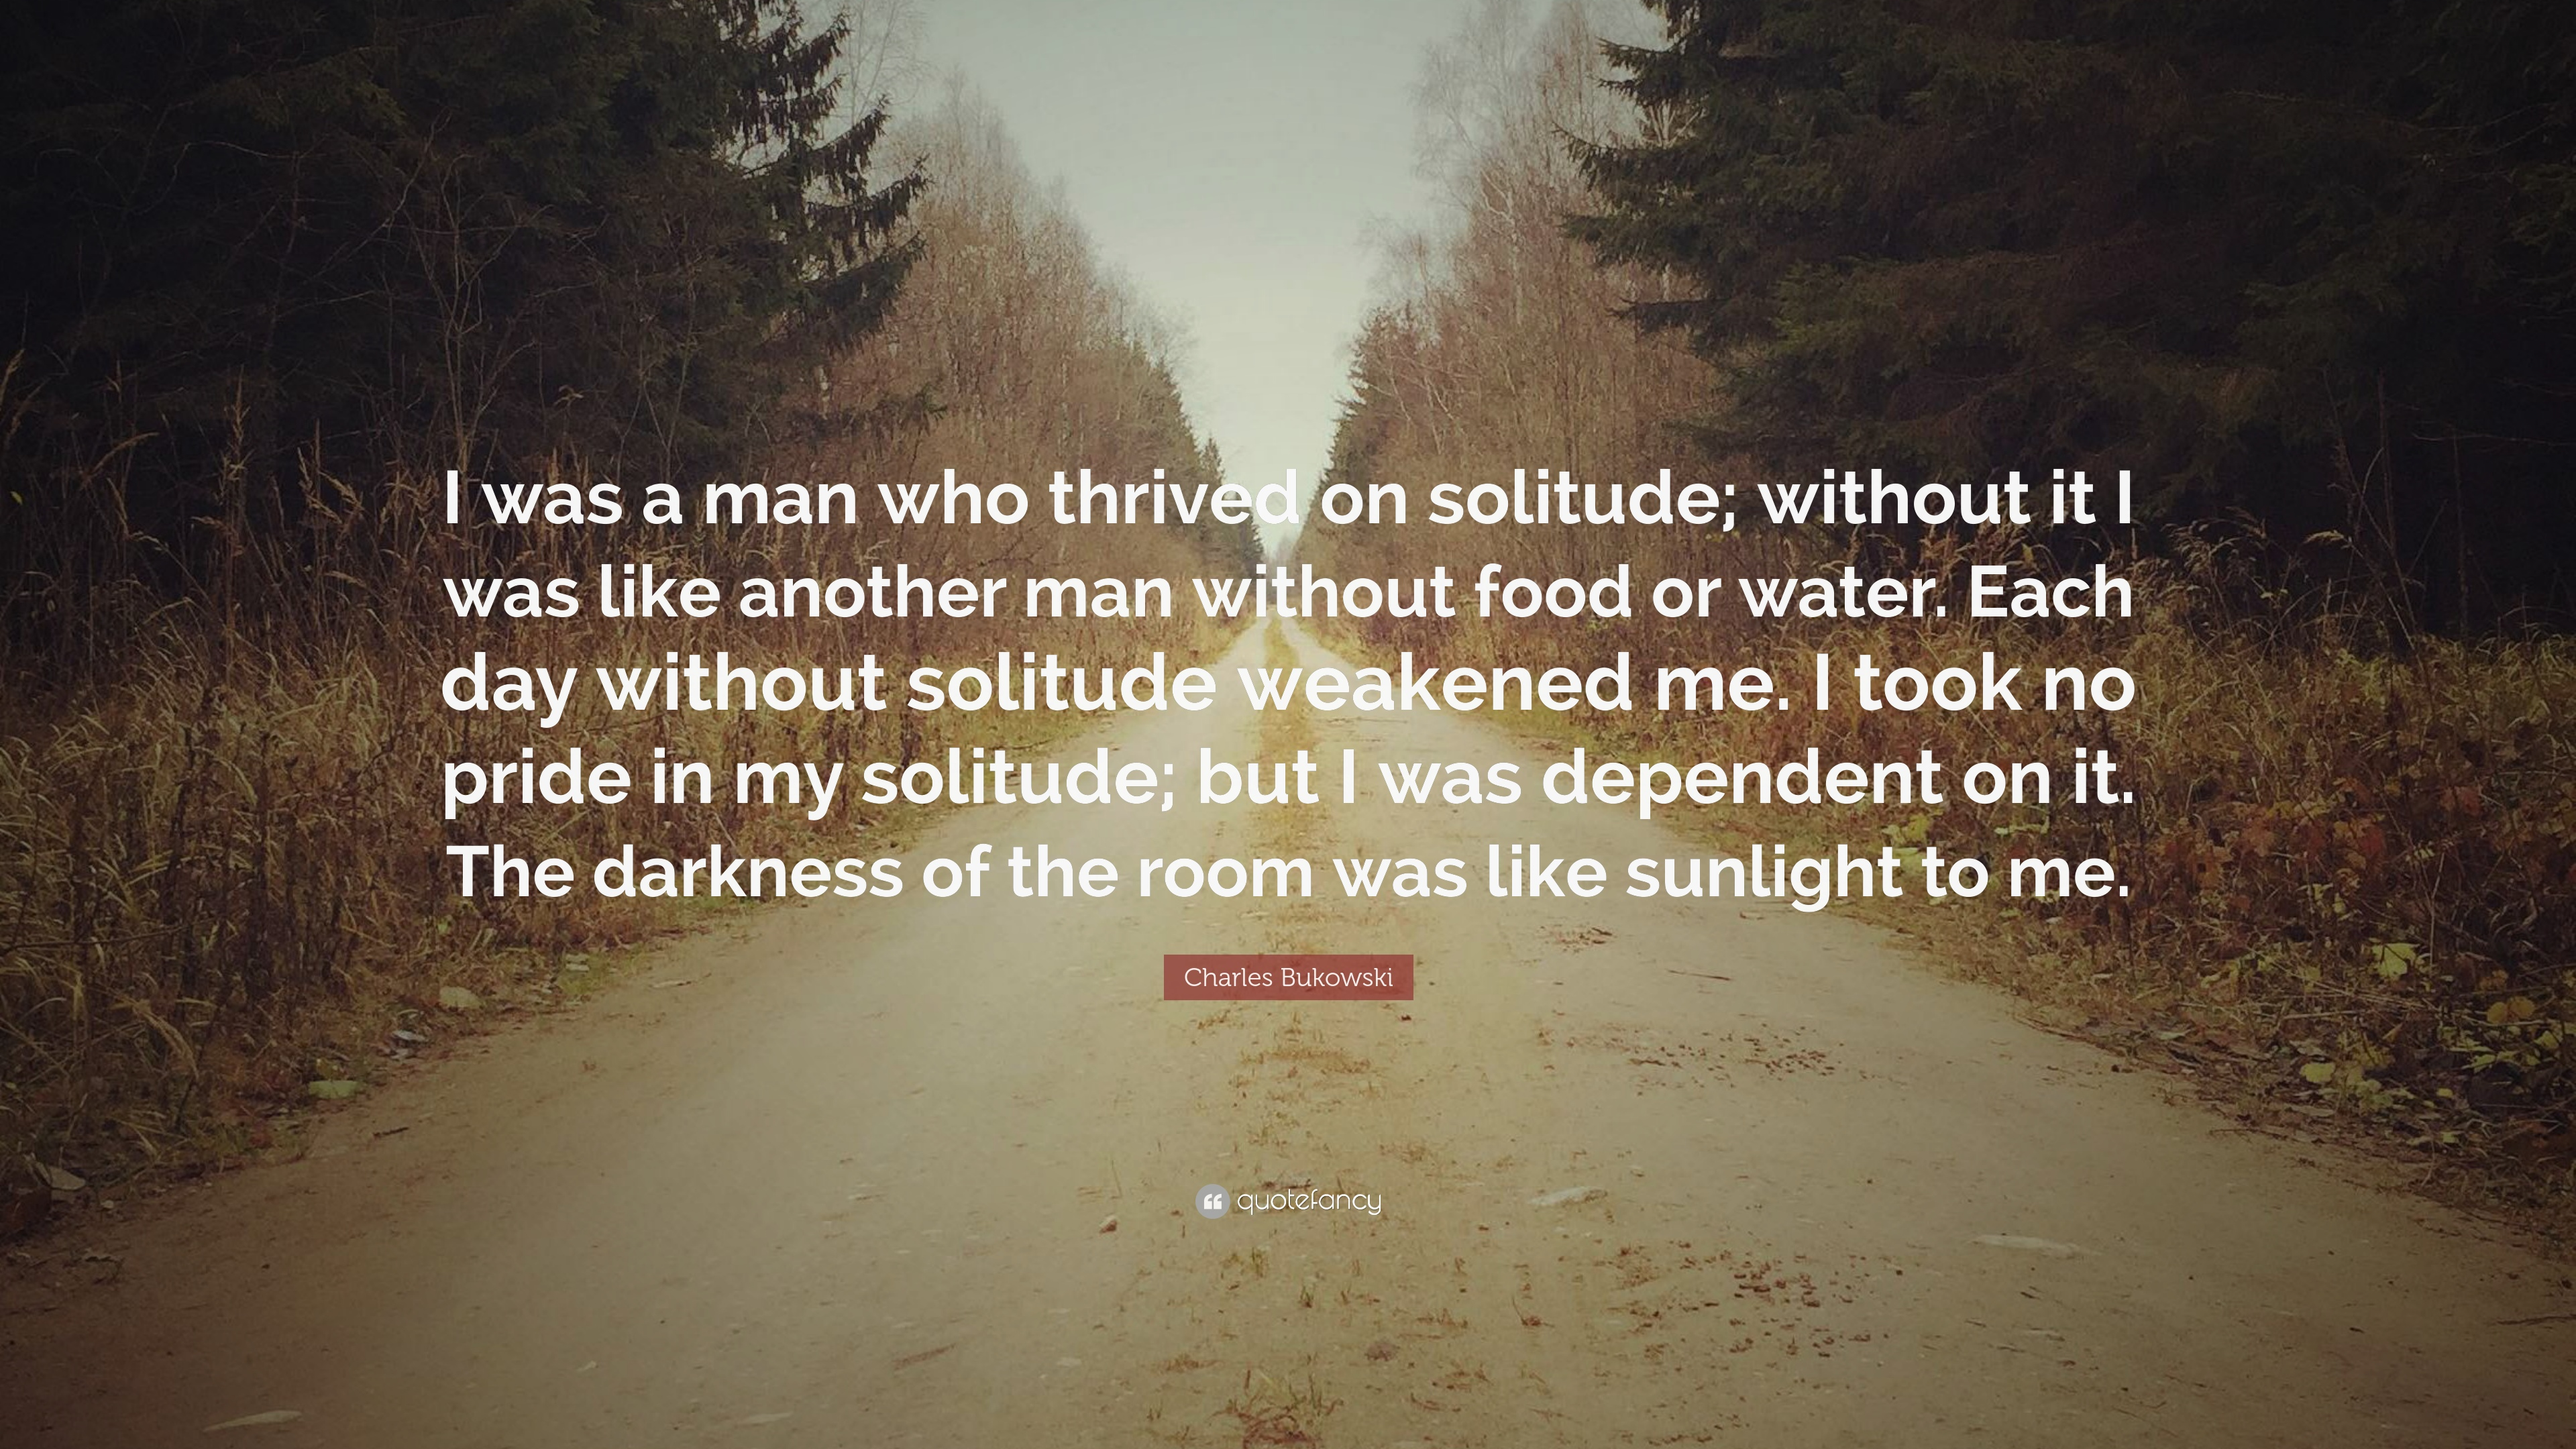 Quotes On Solitude Quotes On Solitude  Quotes Of The Day